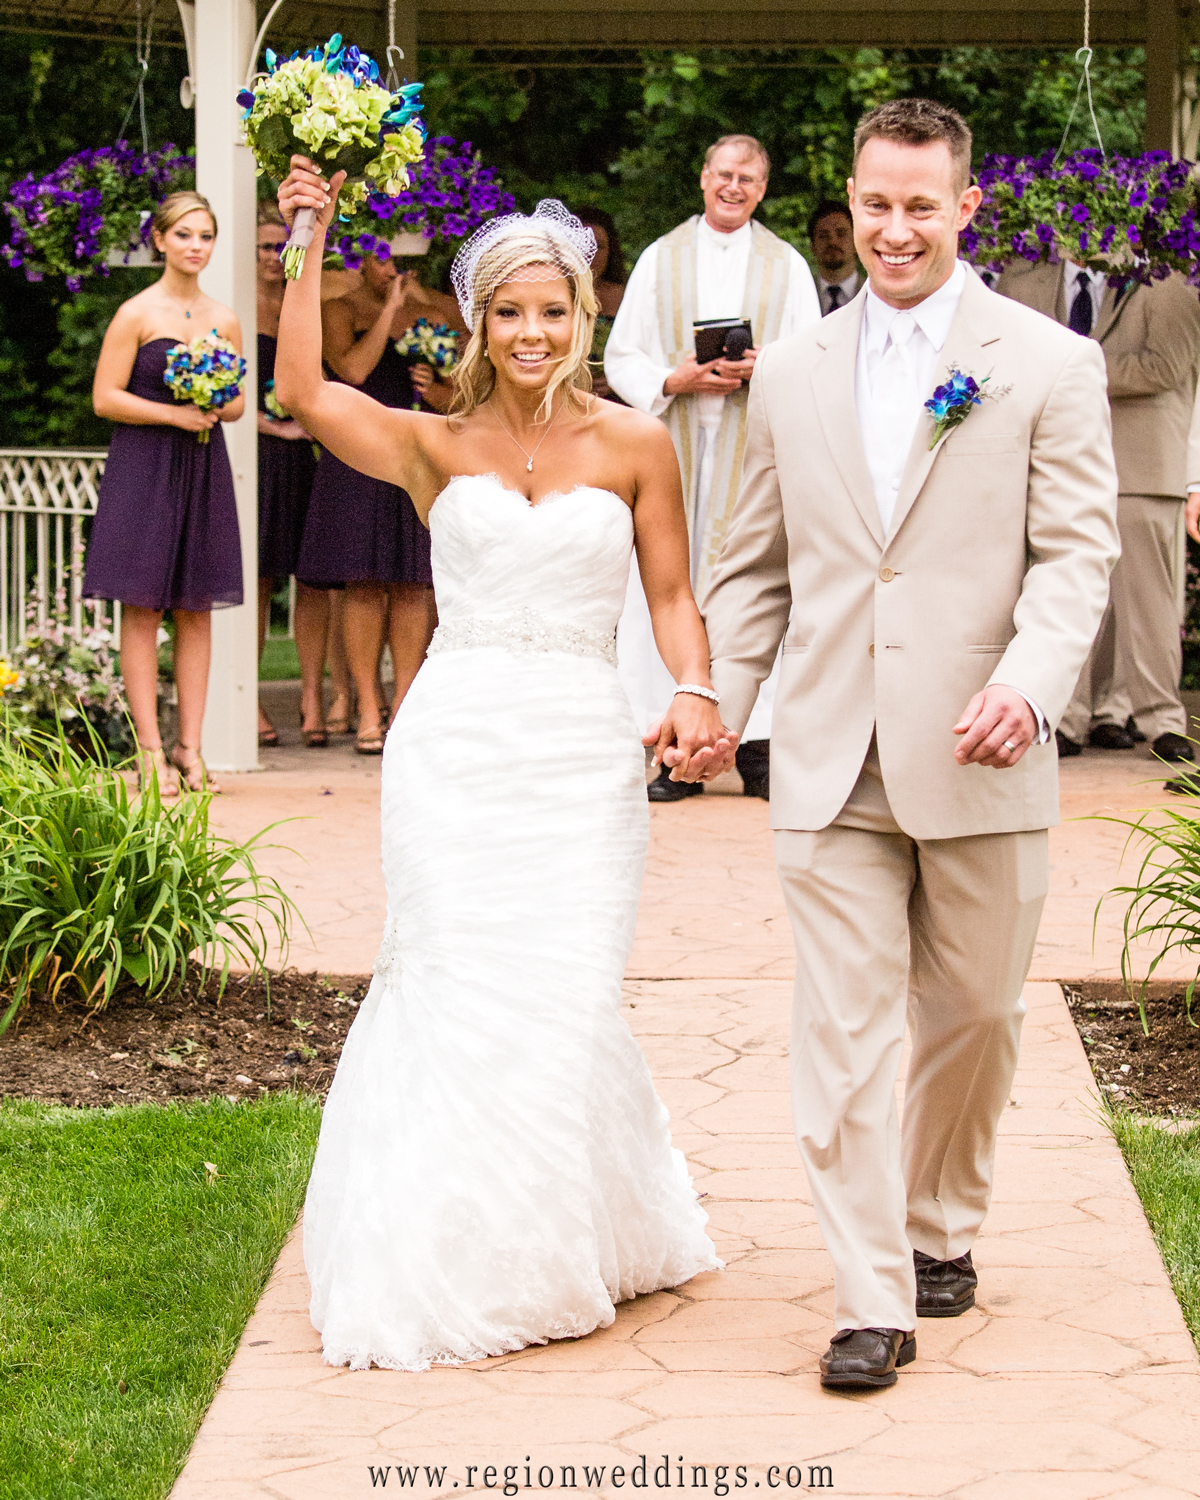 A newly married couple celebrates as they walks down the aisle at their outdoor summer wedding at Halls of St. George.